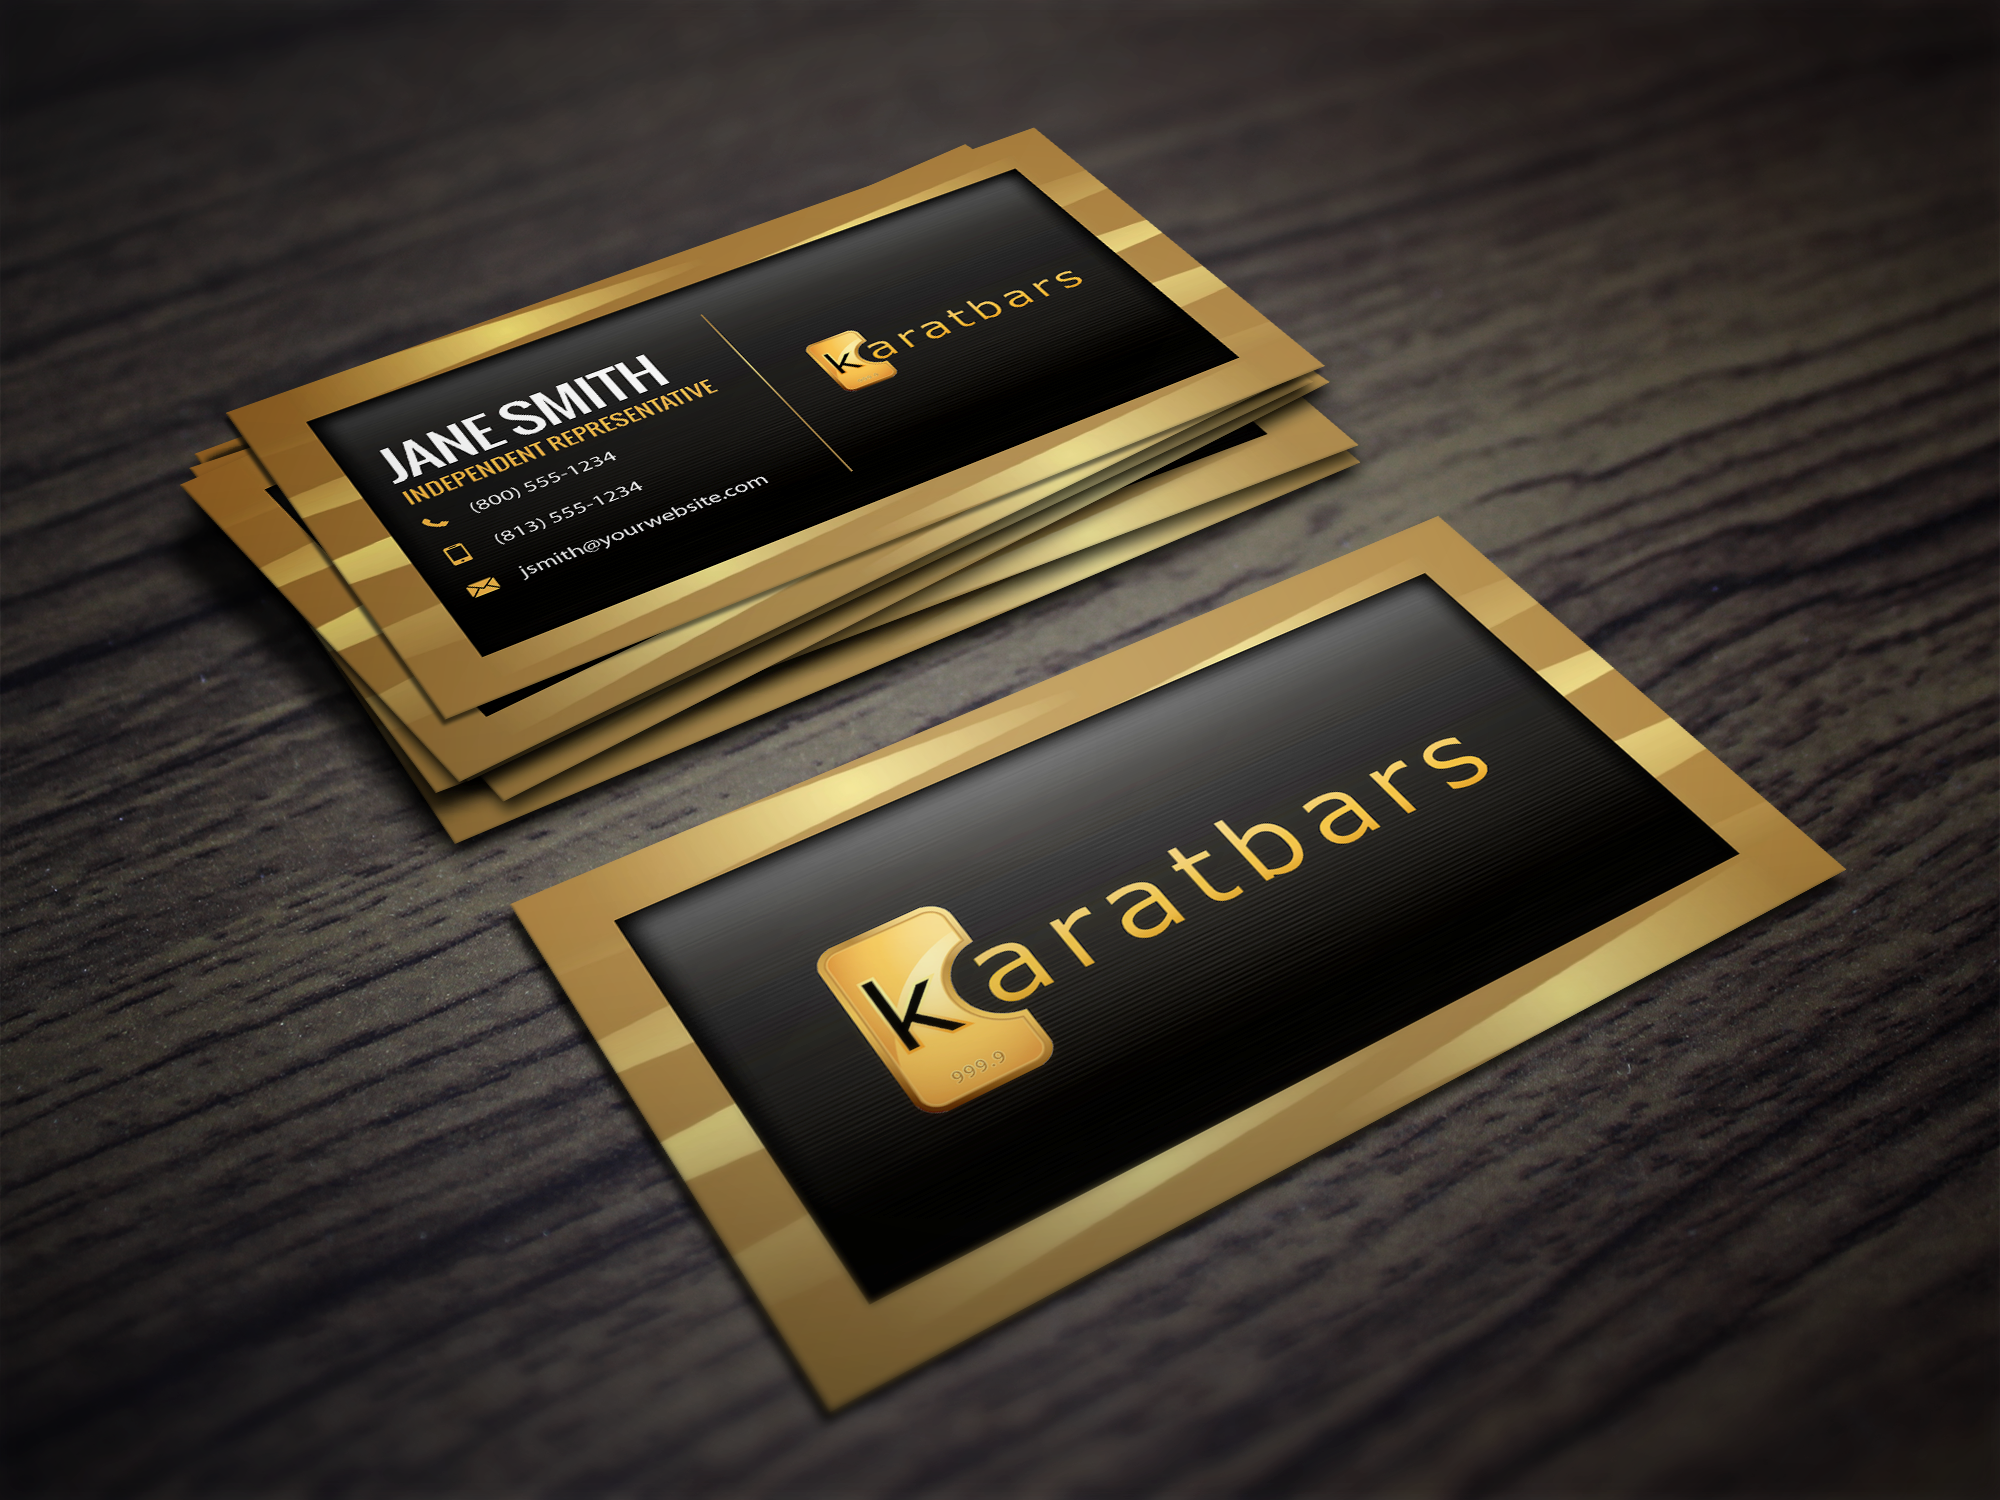 Karatbars Business Cards Free Shipping Free Business Cards Karatbars Visiting Cards